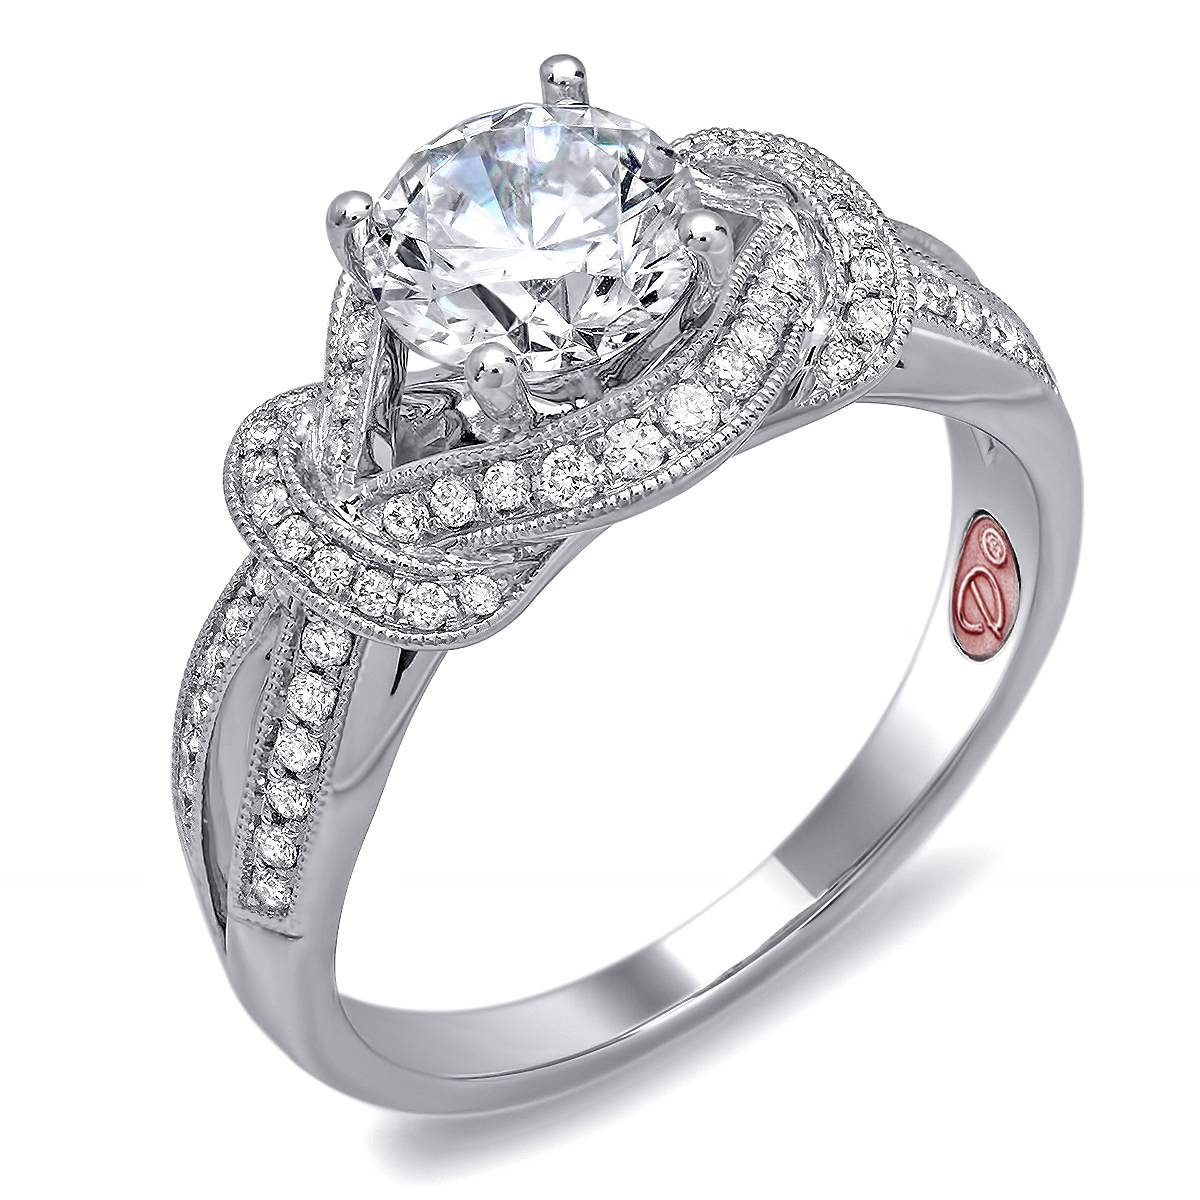 Designer Jewelry | Demarco Bridal Jewelry Official Blog | Page 4 Intended For Love Knot Engagement Rings (Gallery 12 of 15)